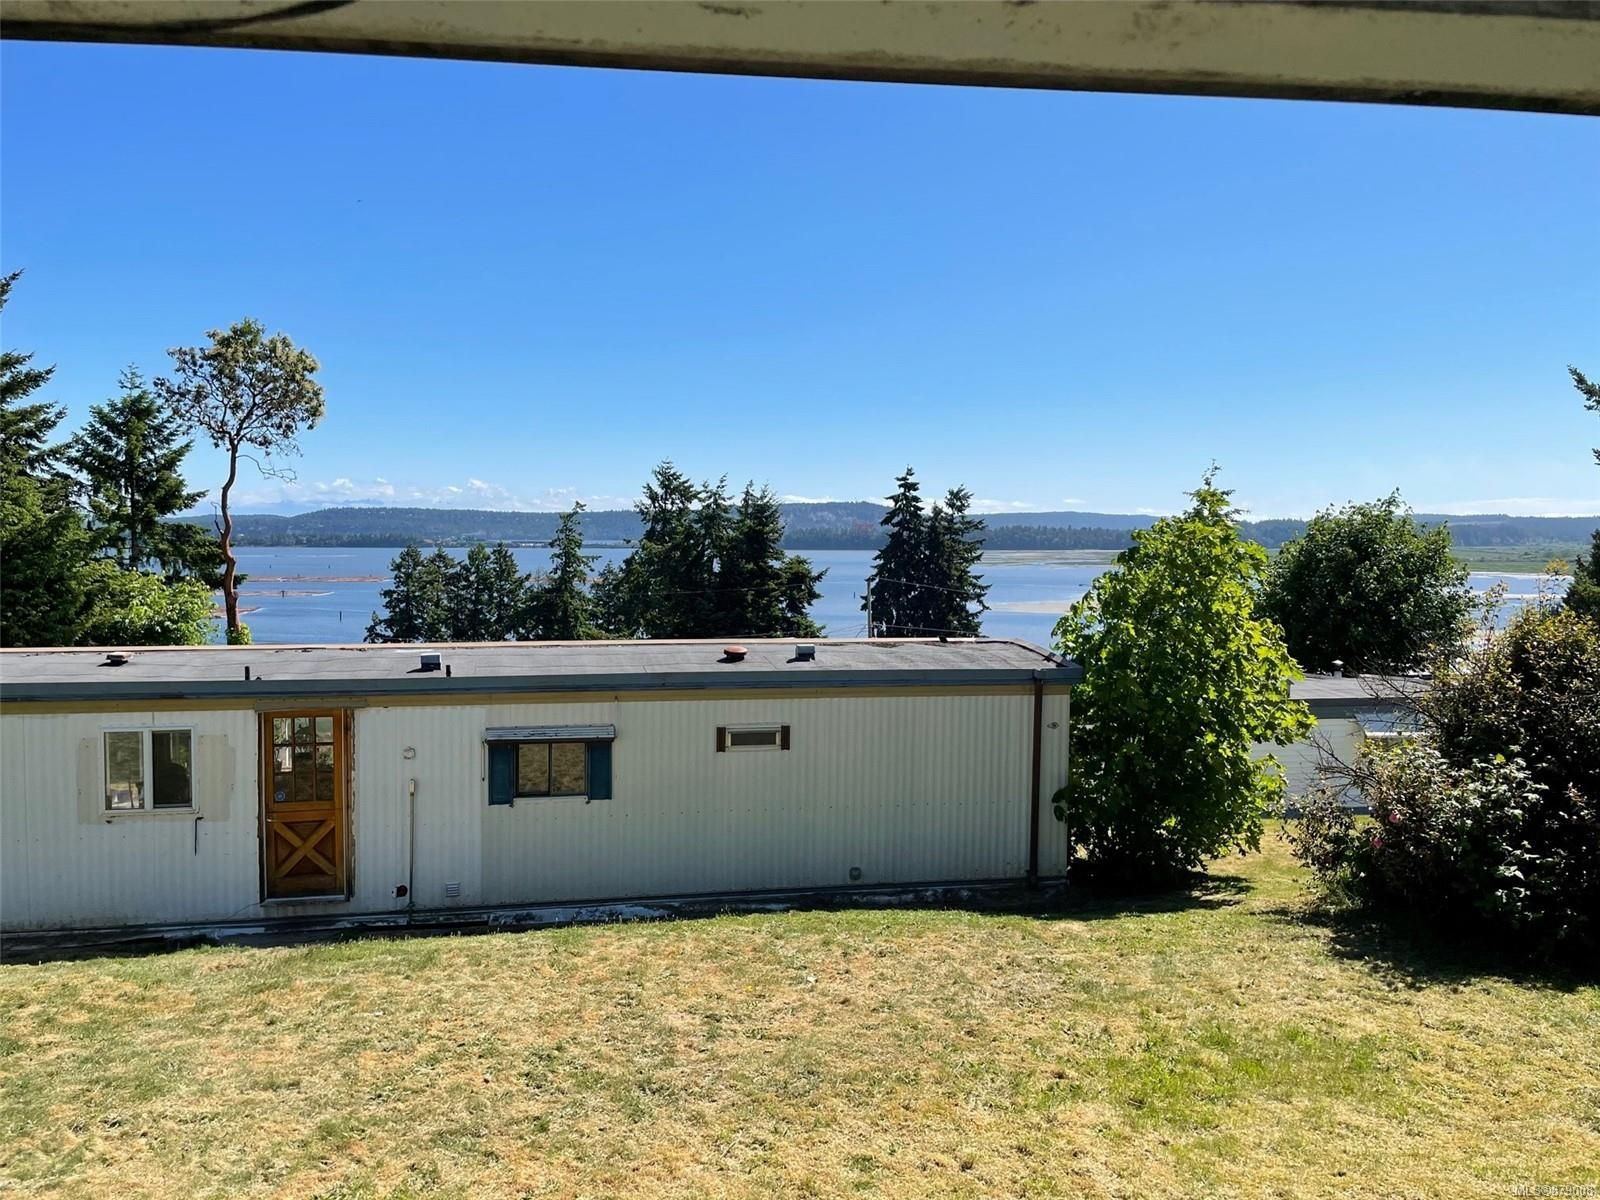 Main Photo: 34 1000 Chase River Rd in : Na South Nanaimo Manufactured Home for sale (Nanaimo)  : MLS®# 879008